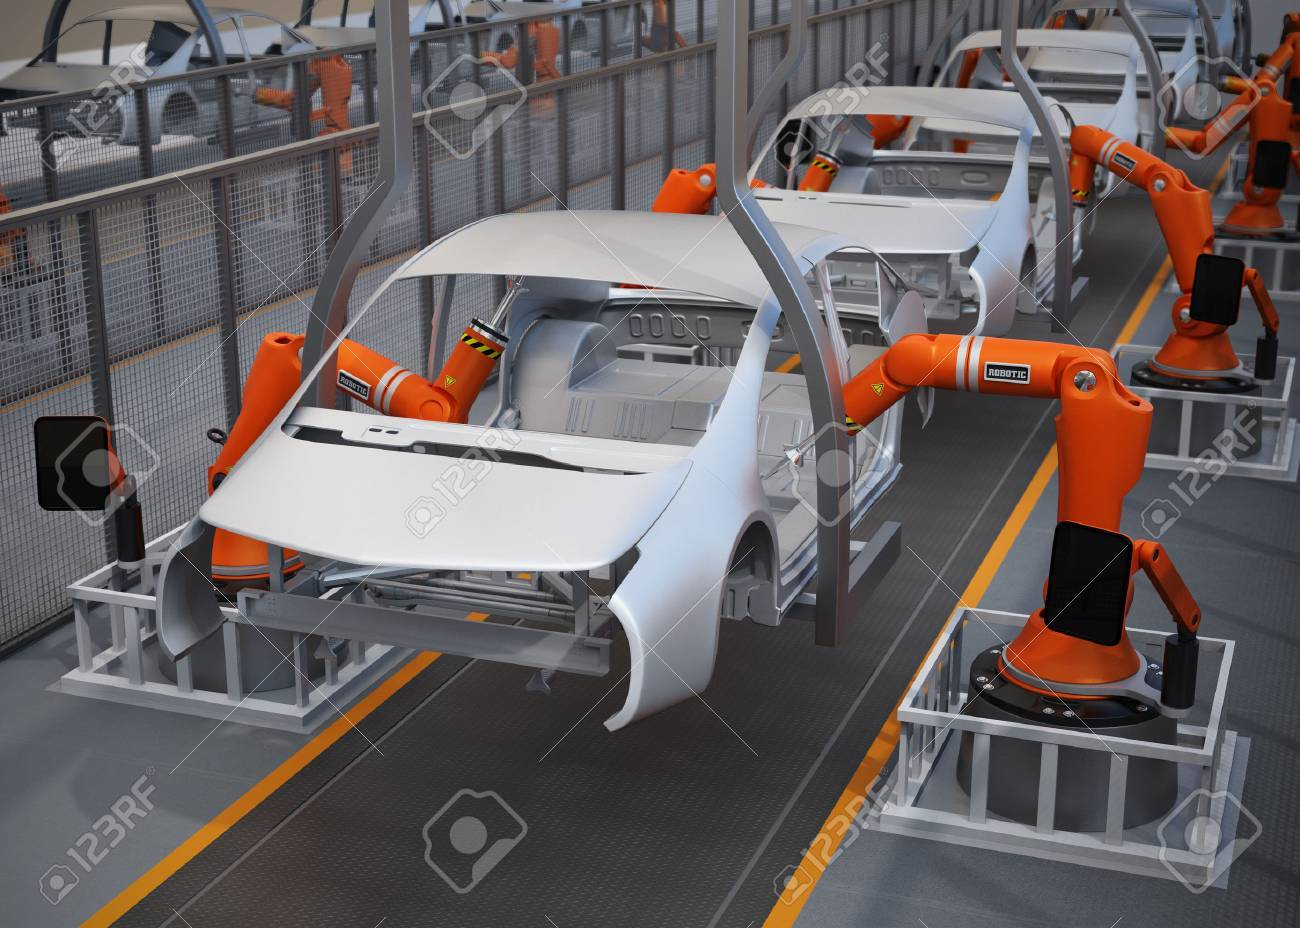 Electric vehicles body assembly line. 3D rendering image. - 65714907